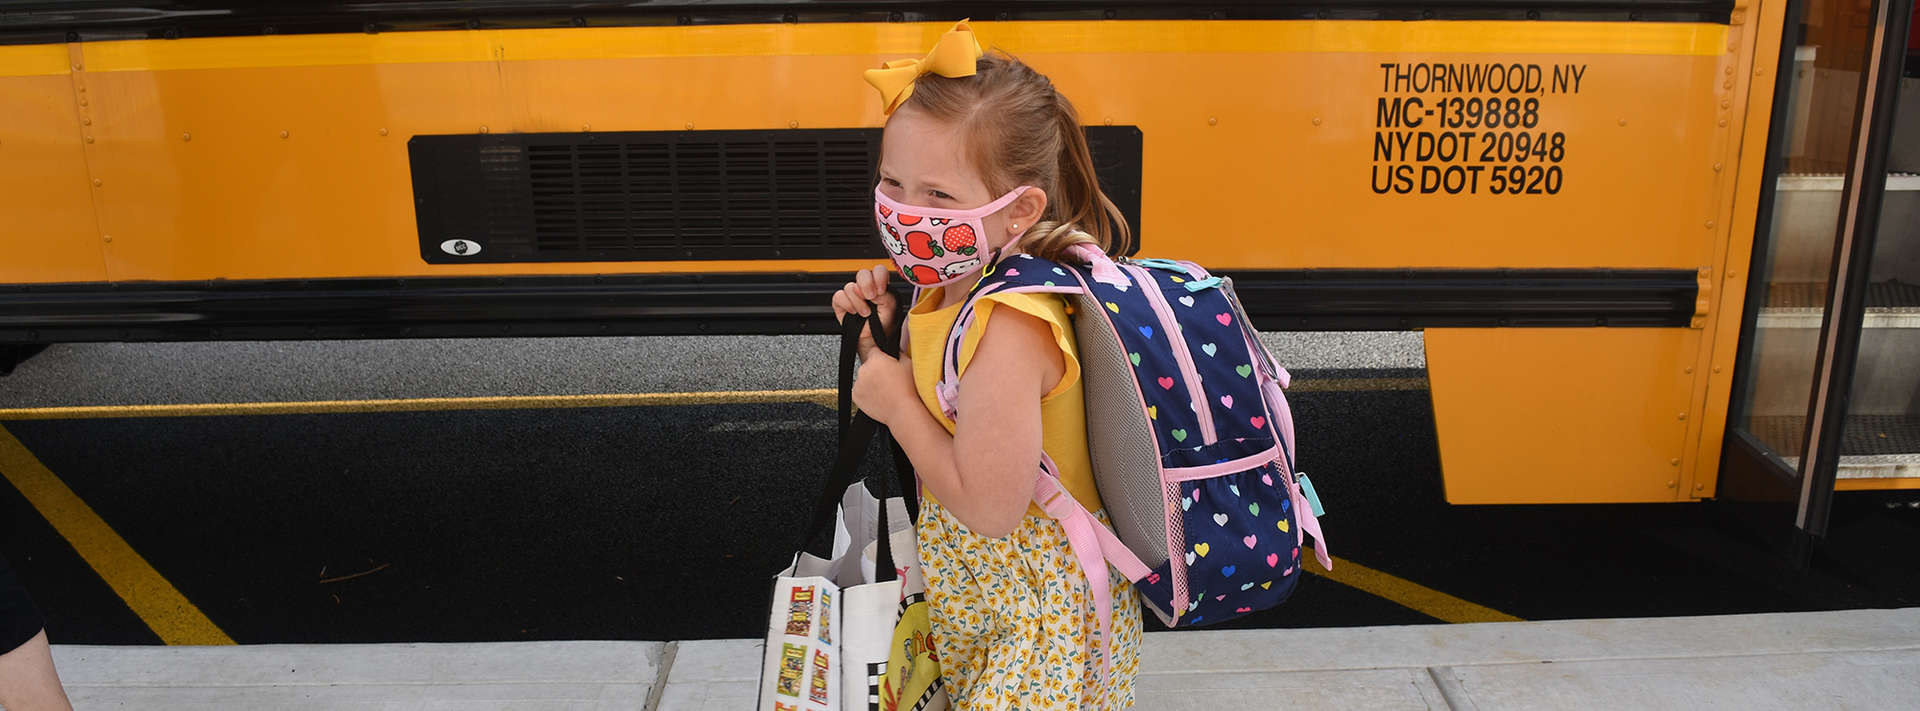 little girl with mask and backpack standing next to bus